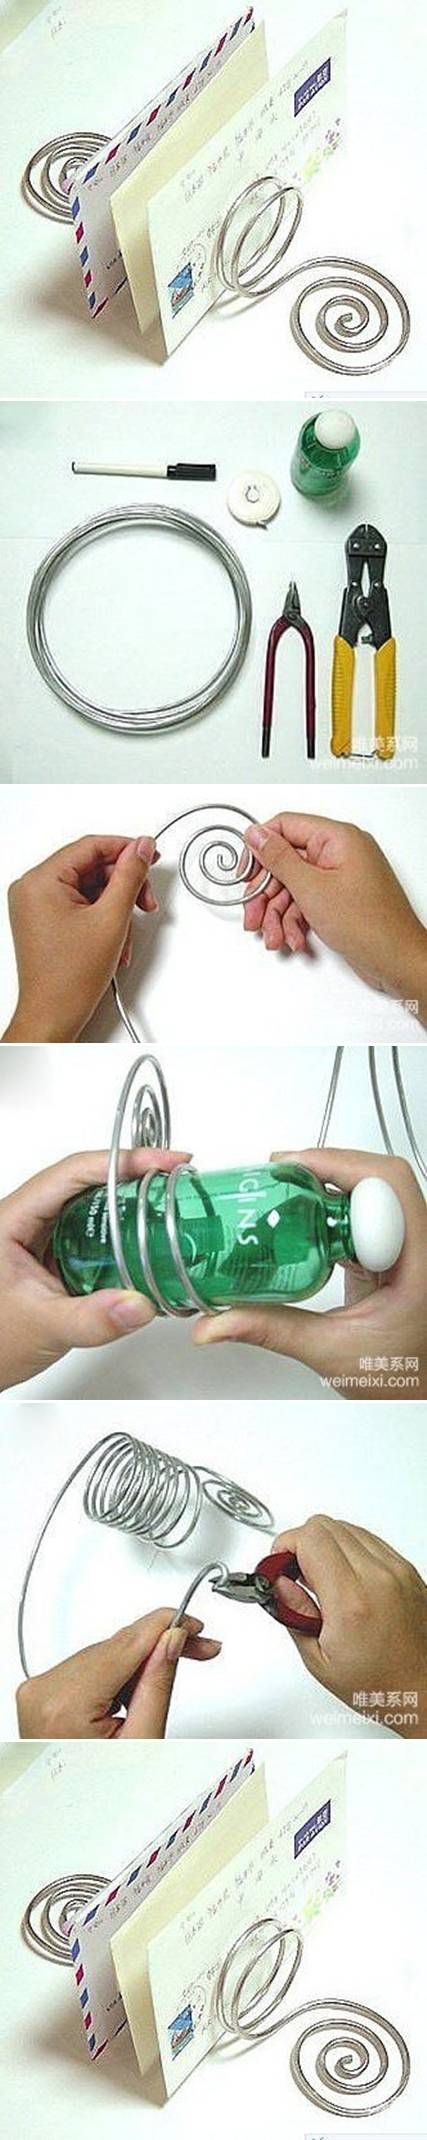 DIY Wire Letter Stand DIY Projects | UsefulDIY.com